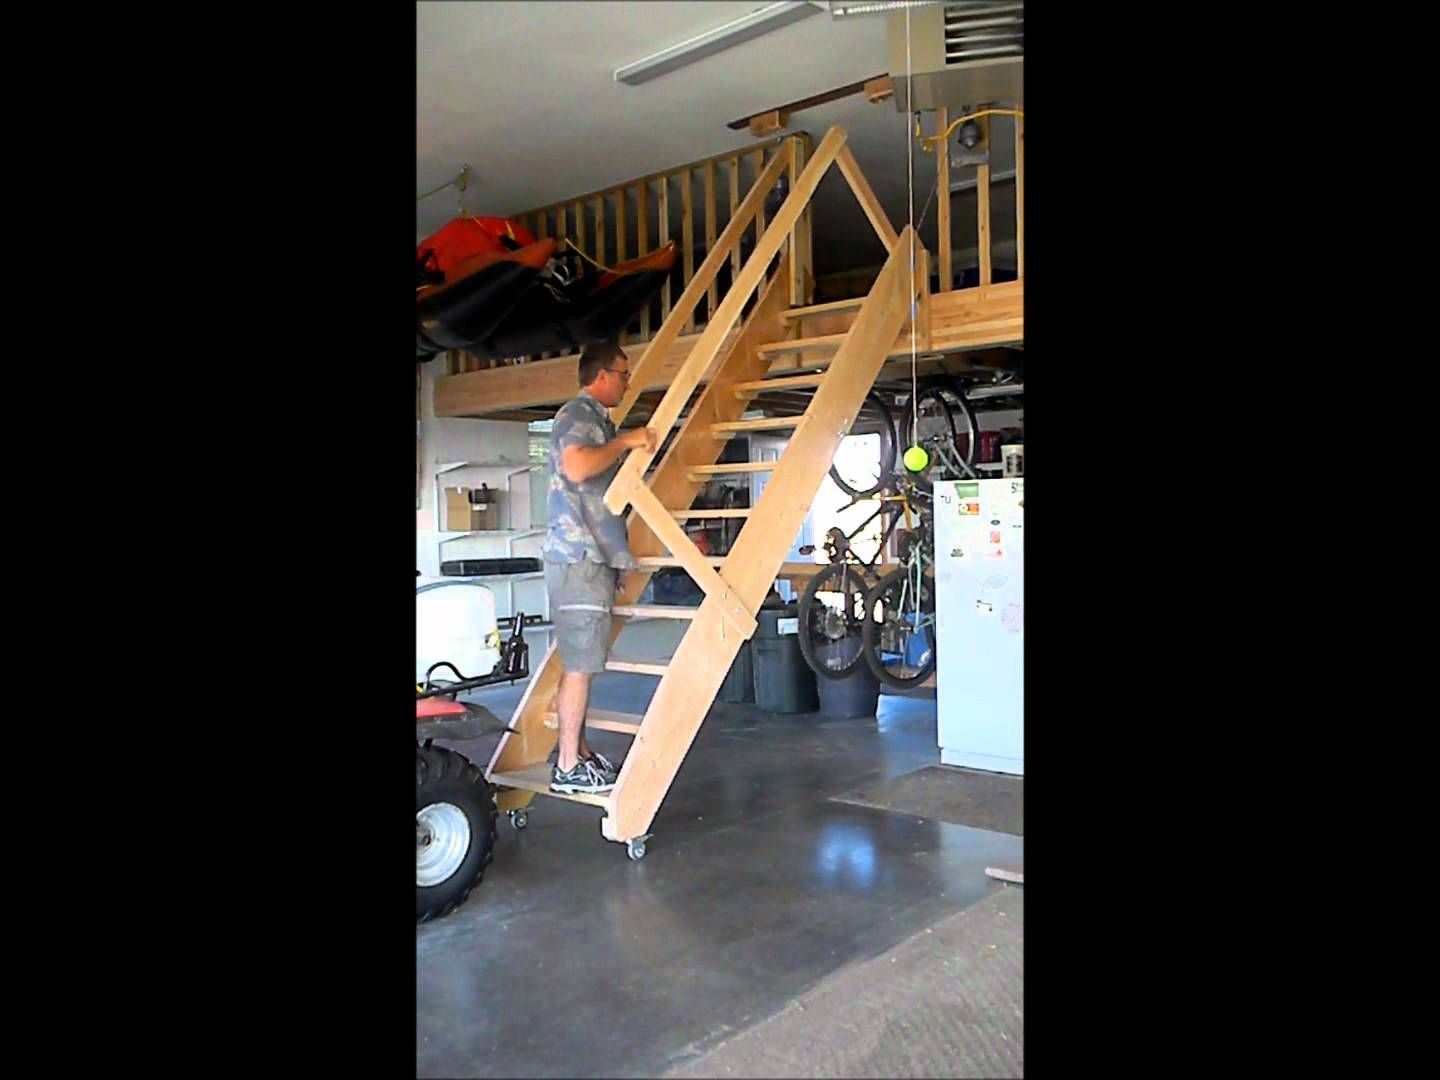 Drop Down Ladders For Garage Attics High Resolution Garage Attic Ladder 12 Garage Attic Stairs Pull Down Attic Renovation Attic Rooms Attic Stairs Pull Down